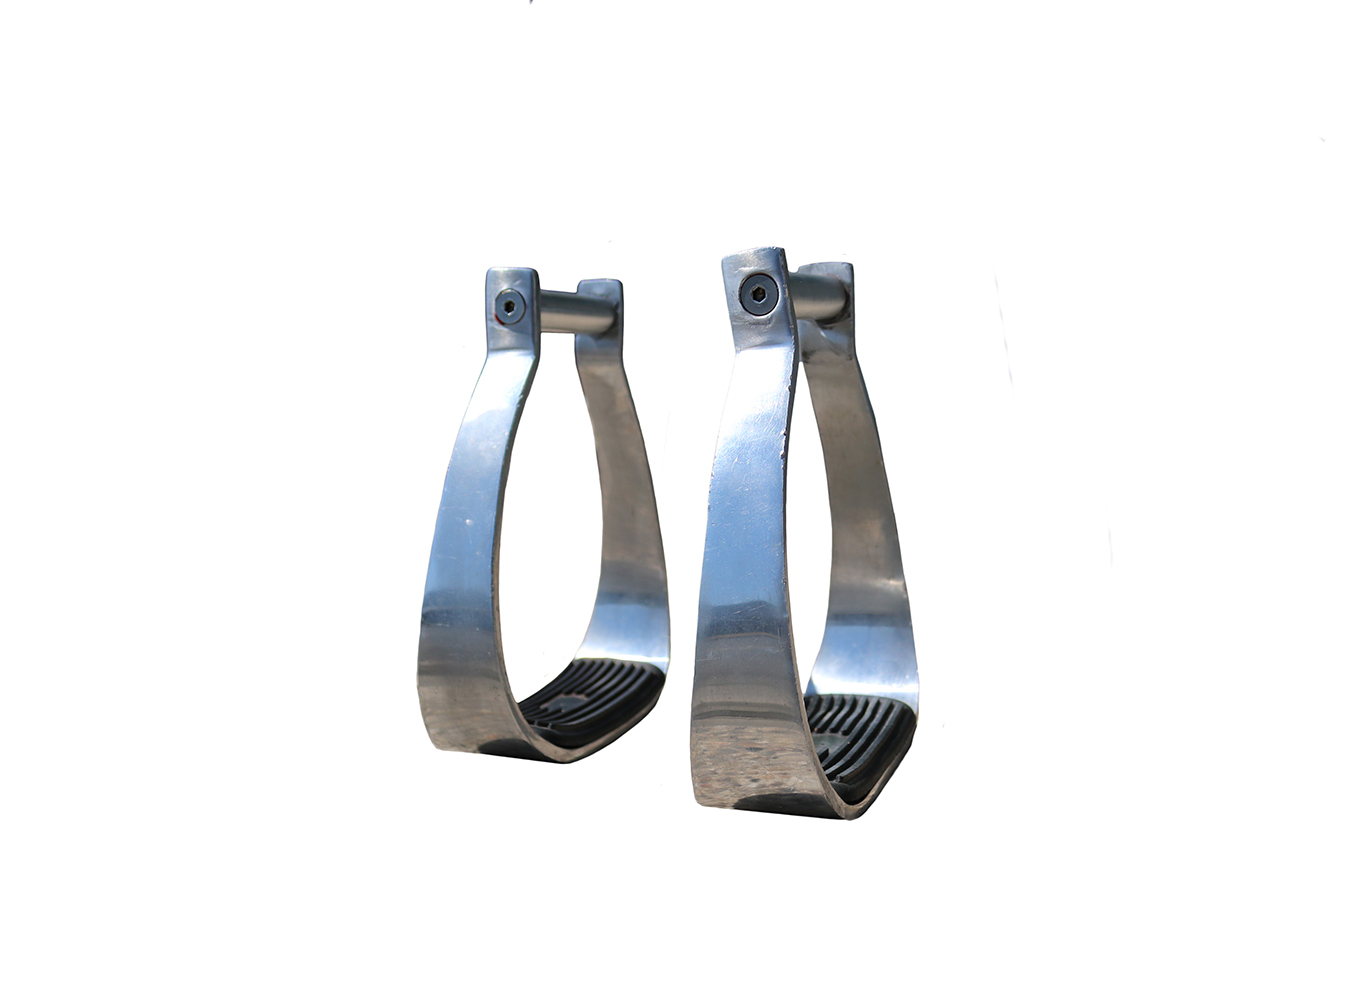 STIRRUPS 2 1/2IN NECK 5IN WIDTH OPENING 2IN DEPTH TREAD RUBBER TREAD ALUMINUM